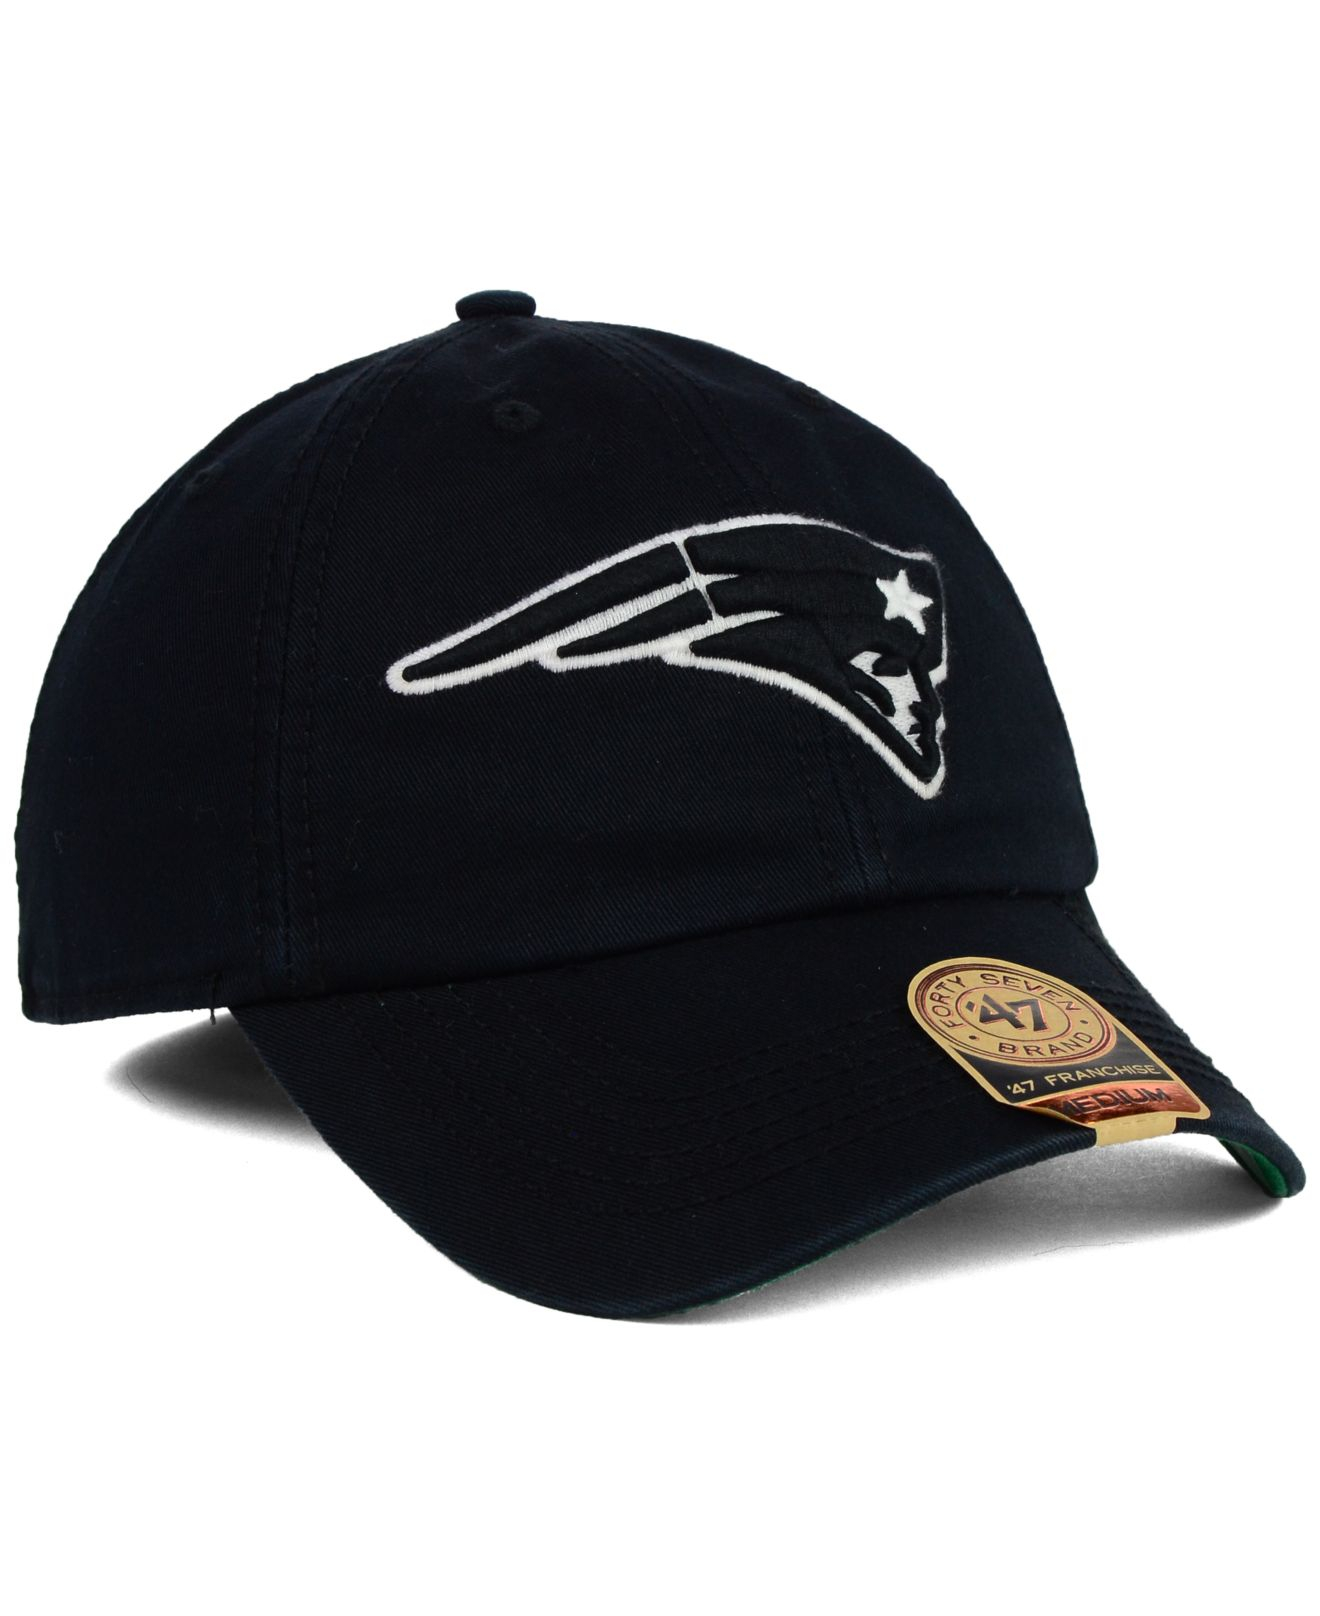 6c43641bdf1e2 ... sale lyst 47 brand new england patriots black white franchise cap in  da0ea 7f6c0 low price nfl ...